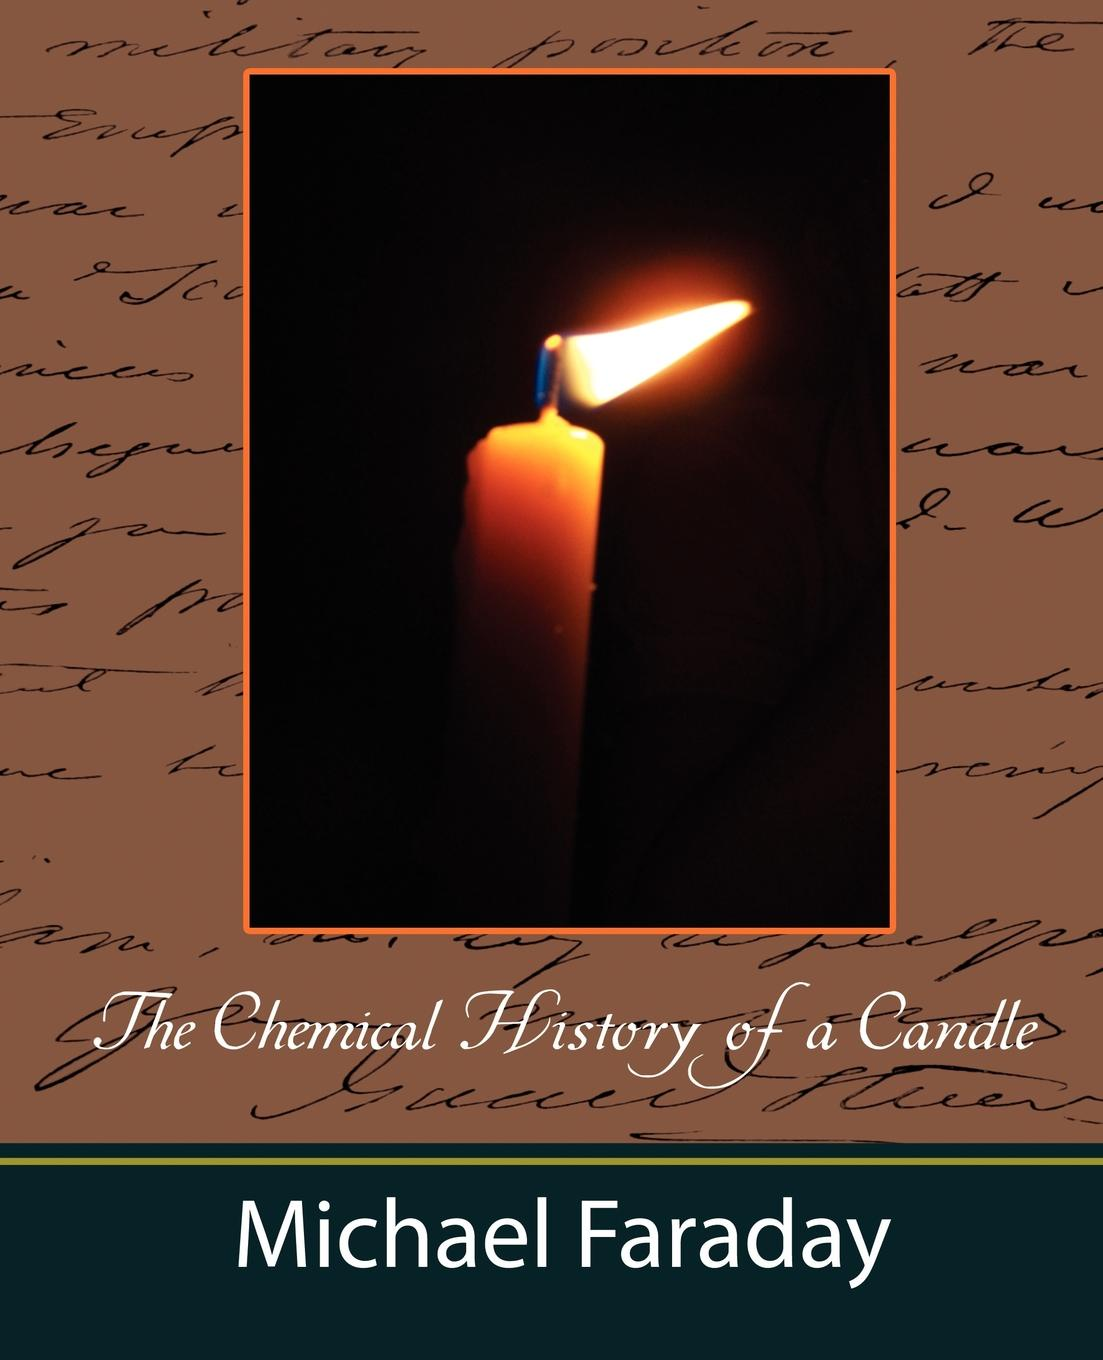 цена на Faraday Michael Faraday, Faraday Michael The Chemical History of a Candle (Michael Faraday)